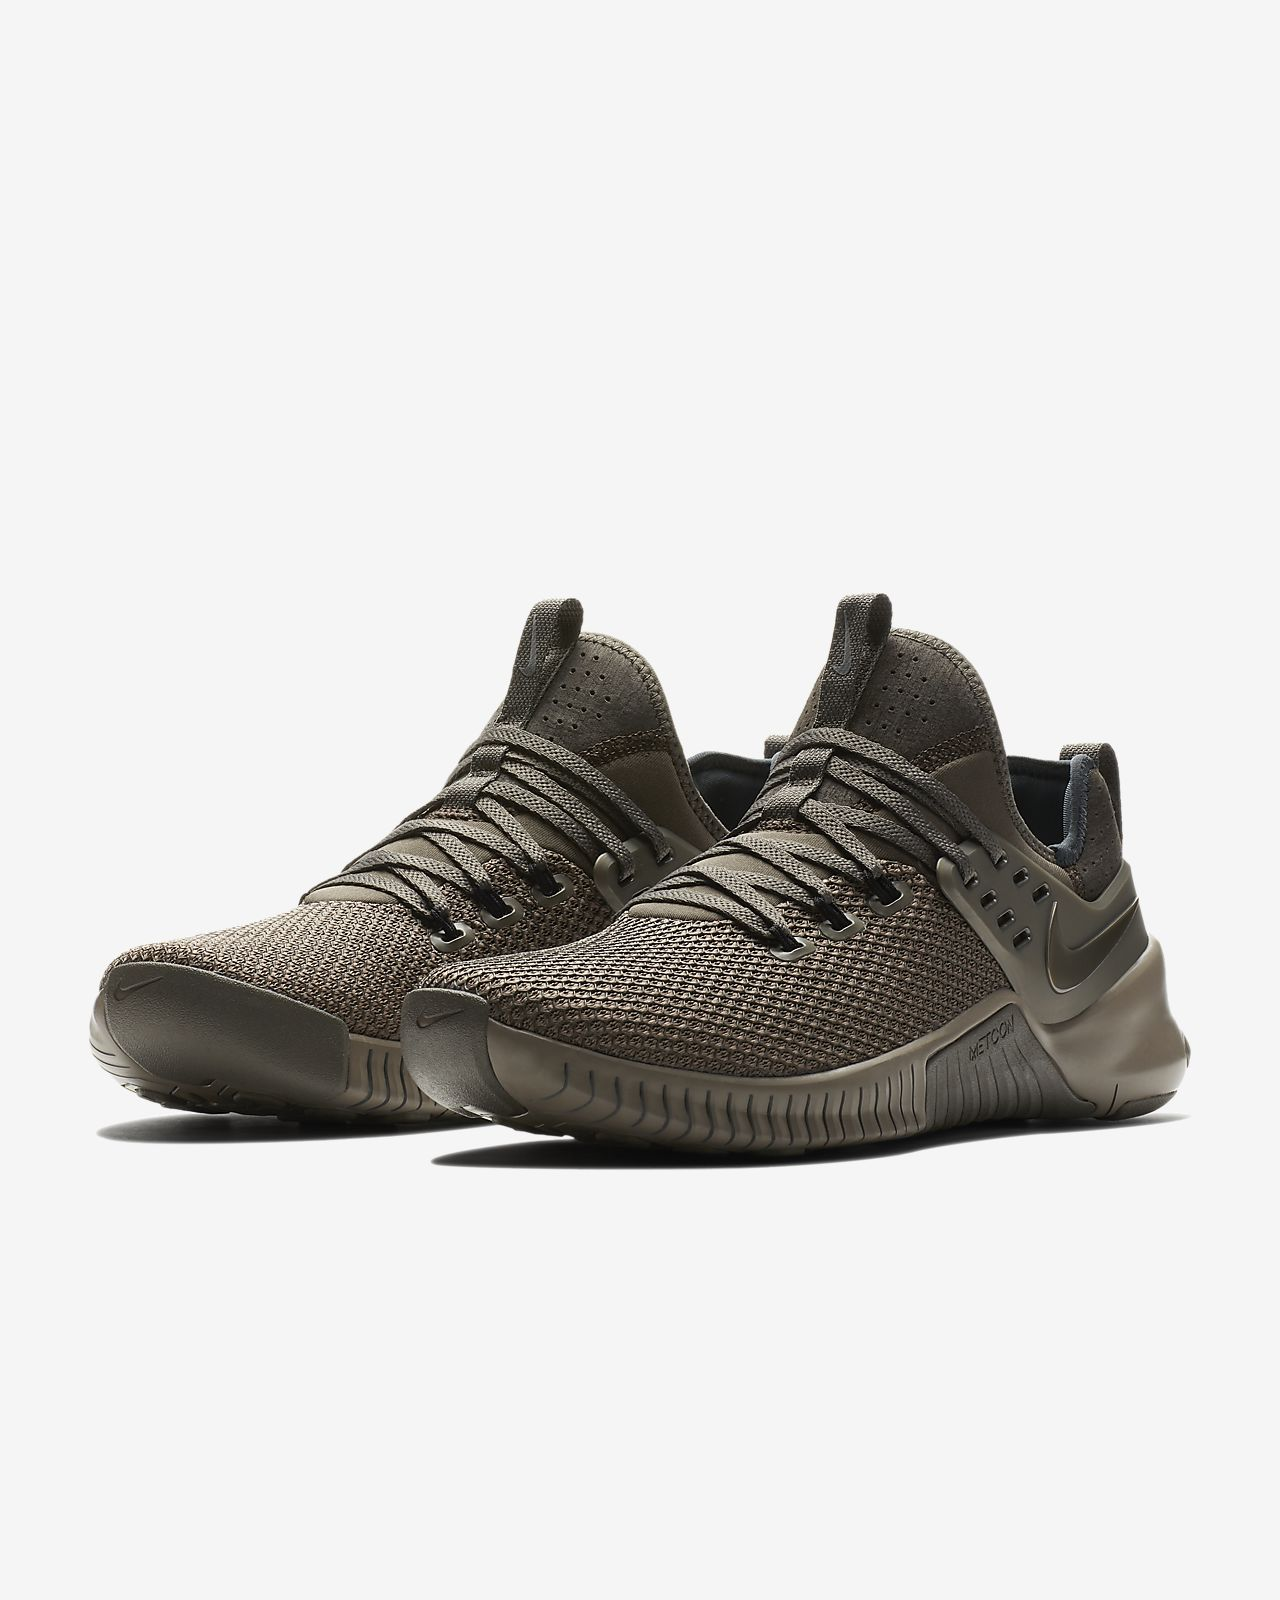 nike free x metcon viking quest men's training shoe. nike